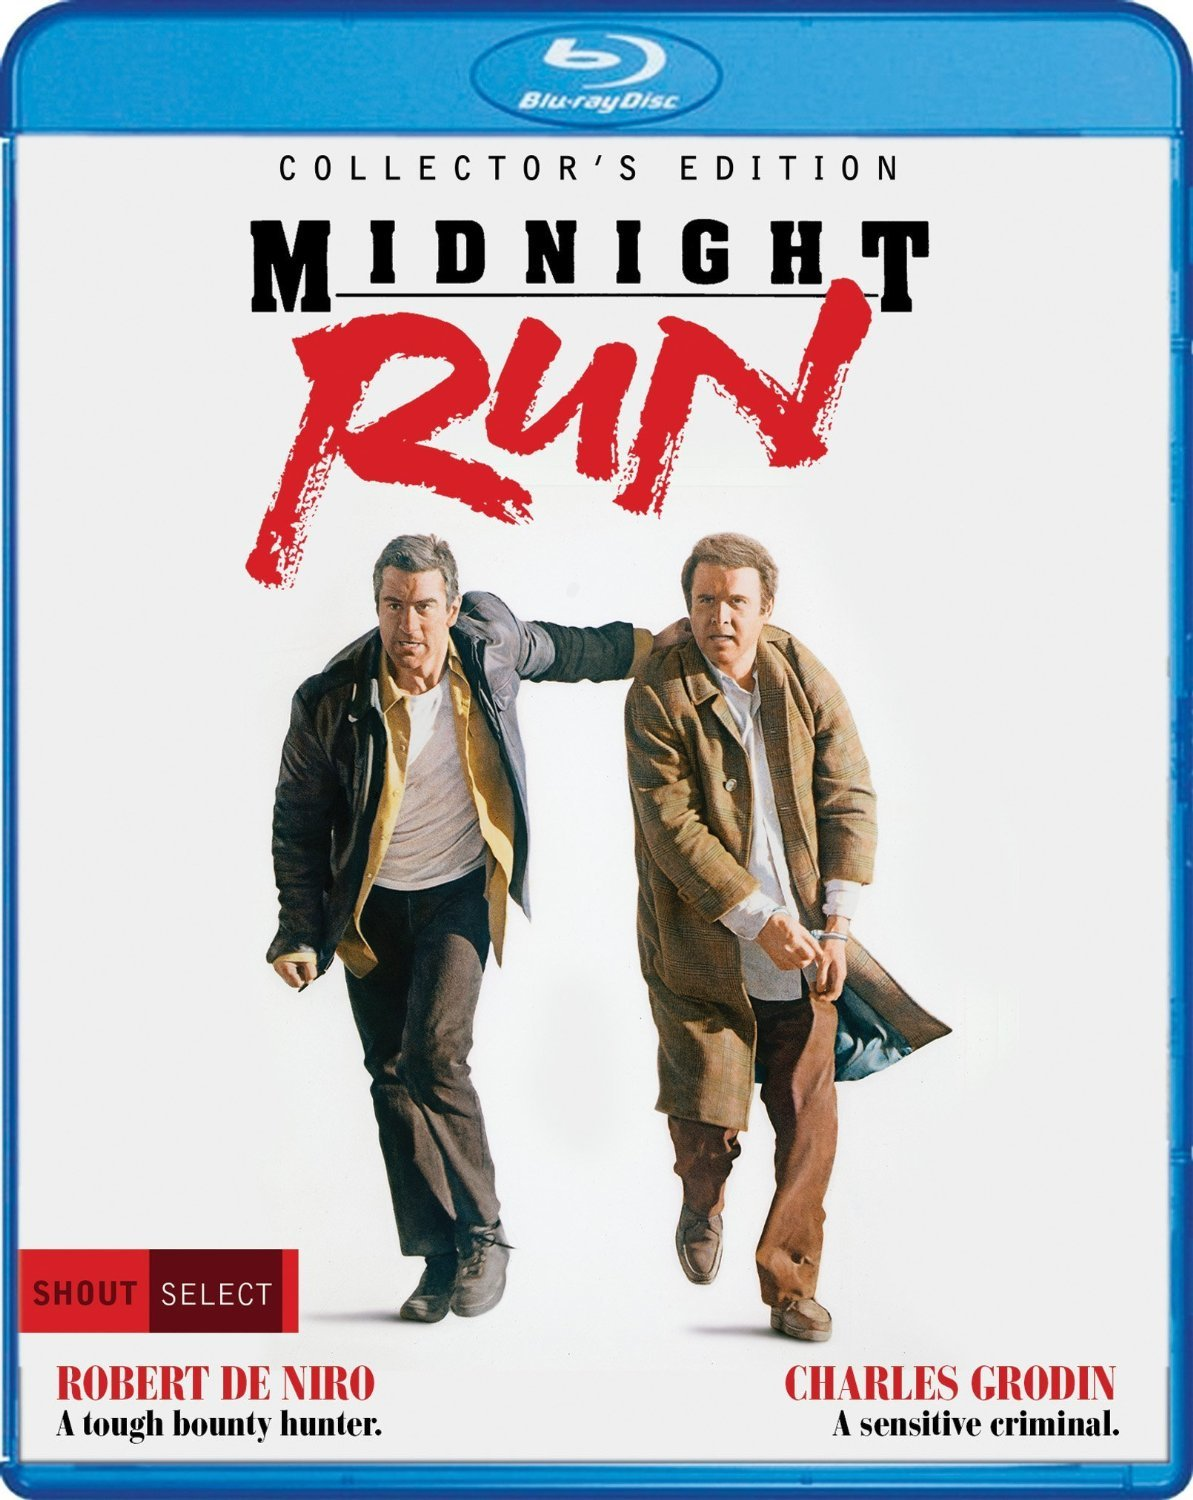 Midnight Run (Collector's Edition) Blu-Ray Review - Shout Select